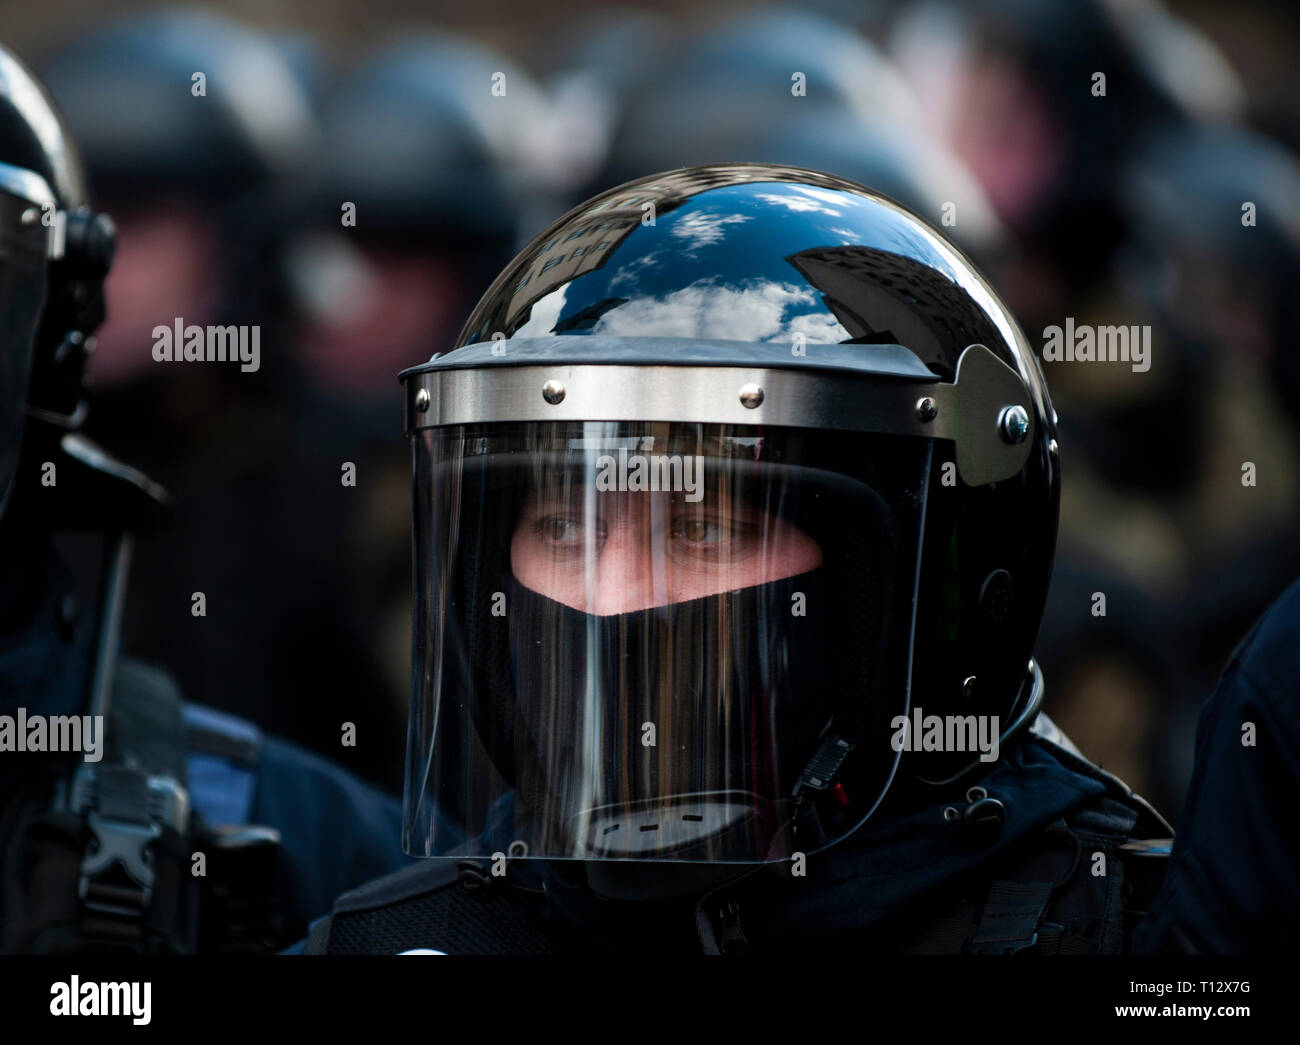 A Ukrainian police officer in riot gear seen standing guard during the demonstration.  Protesters gathered in Maidan Square then marched to the Presidential Administration building to call on President Petro Poroshenko to bring corrupt governmental officials to justice. With the Ukrainian Elections being held at the end of March the political tensions run very high. Stock Photo